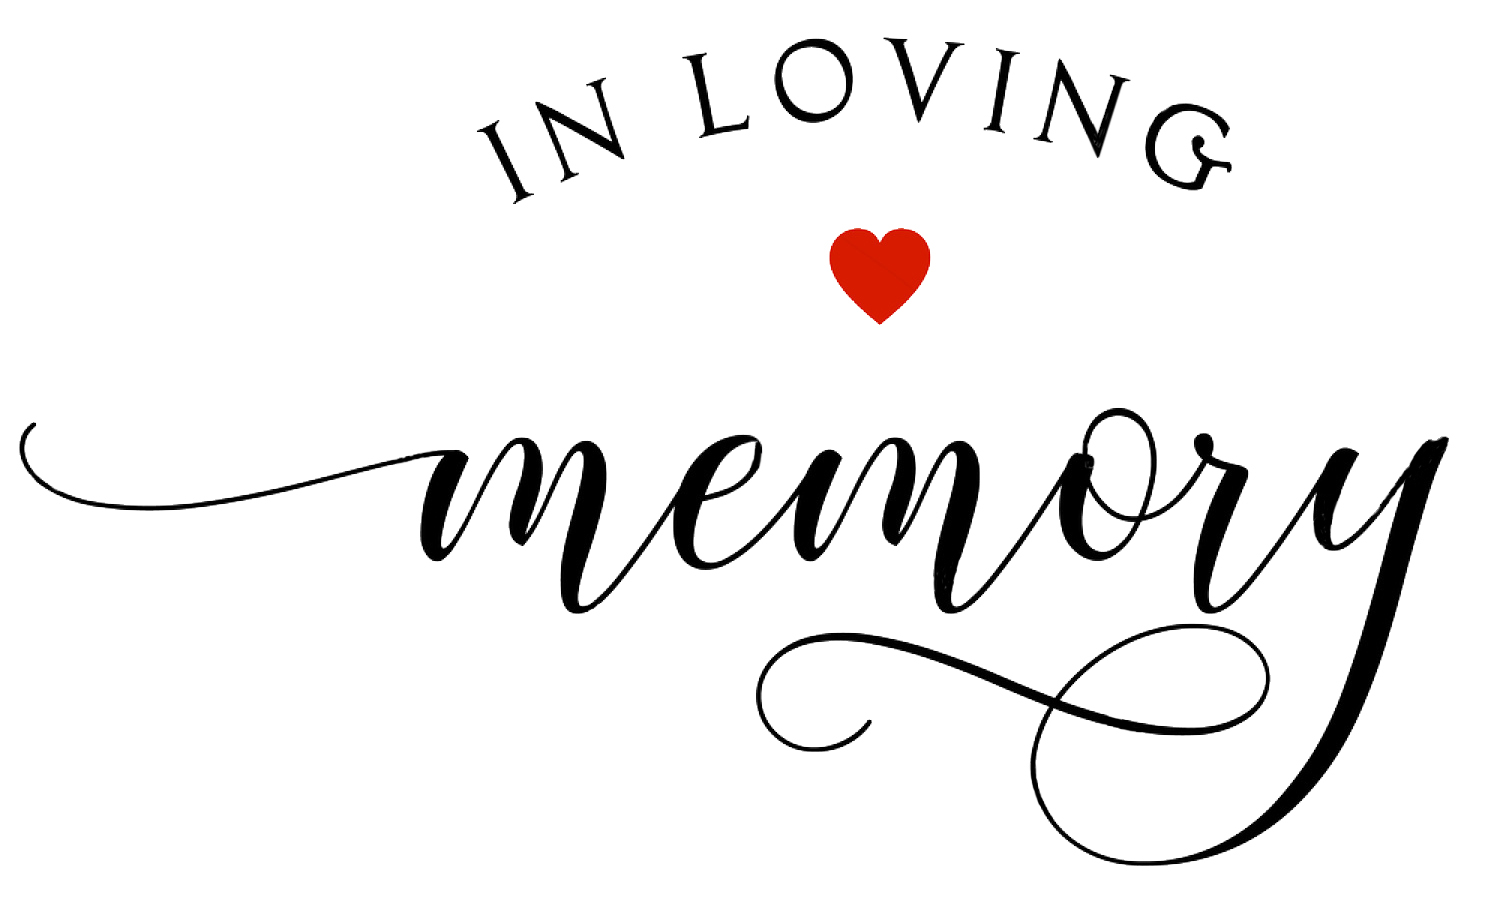 Memories clipart love life. Tattoo marks family legacy